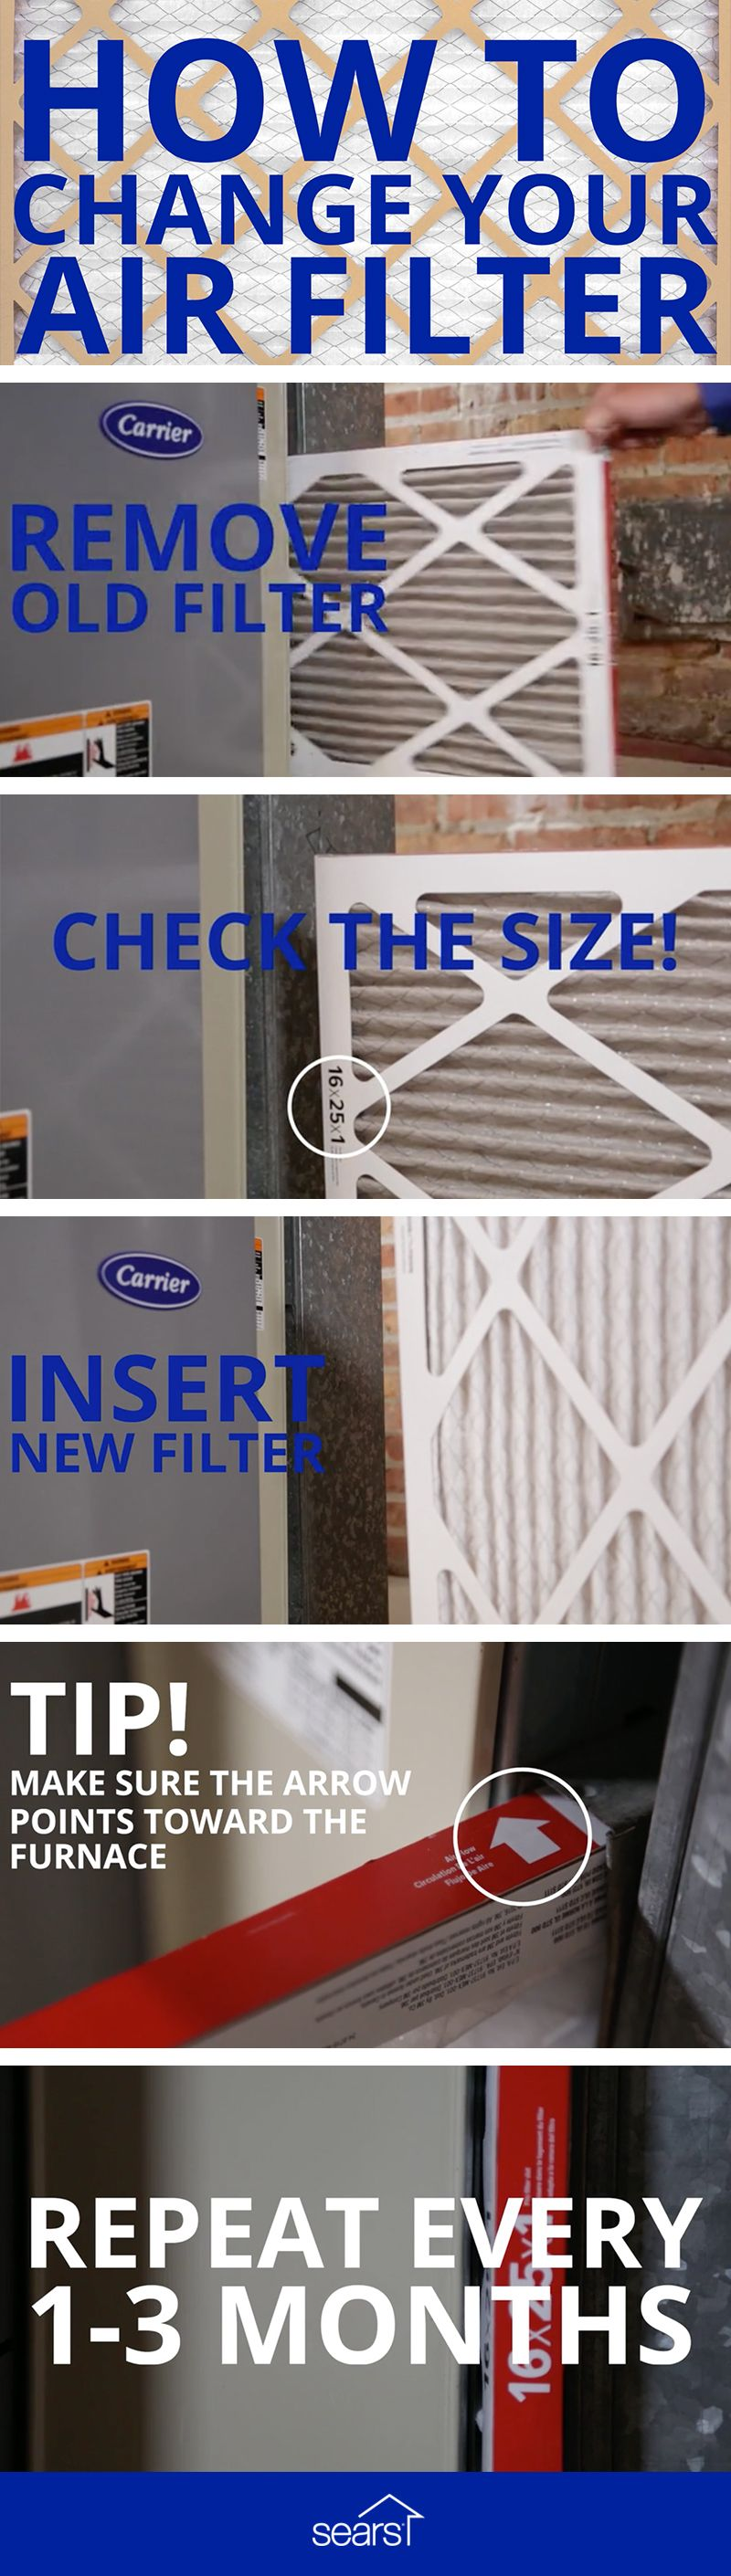 How Do You Change Your Hvac Air Filter First Remove The Old Filter Check The Size To Make Sure You Re R Hvac Maintenance Hvac Air Home Maintenance Checklist